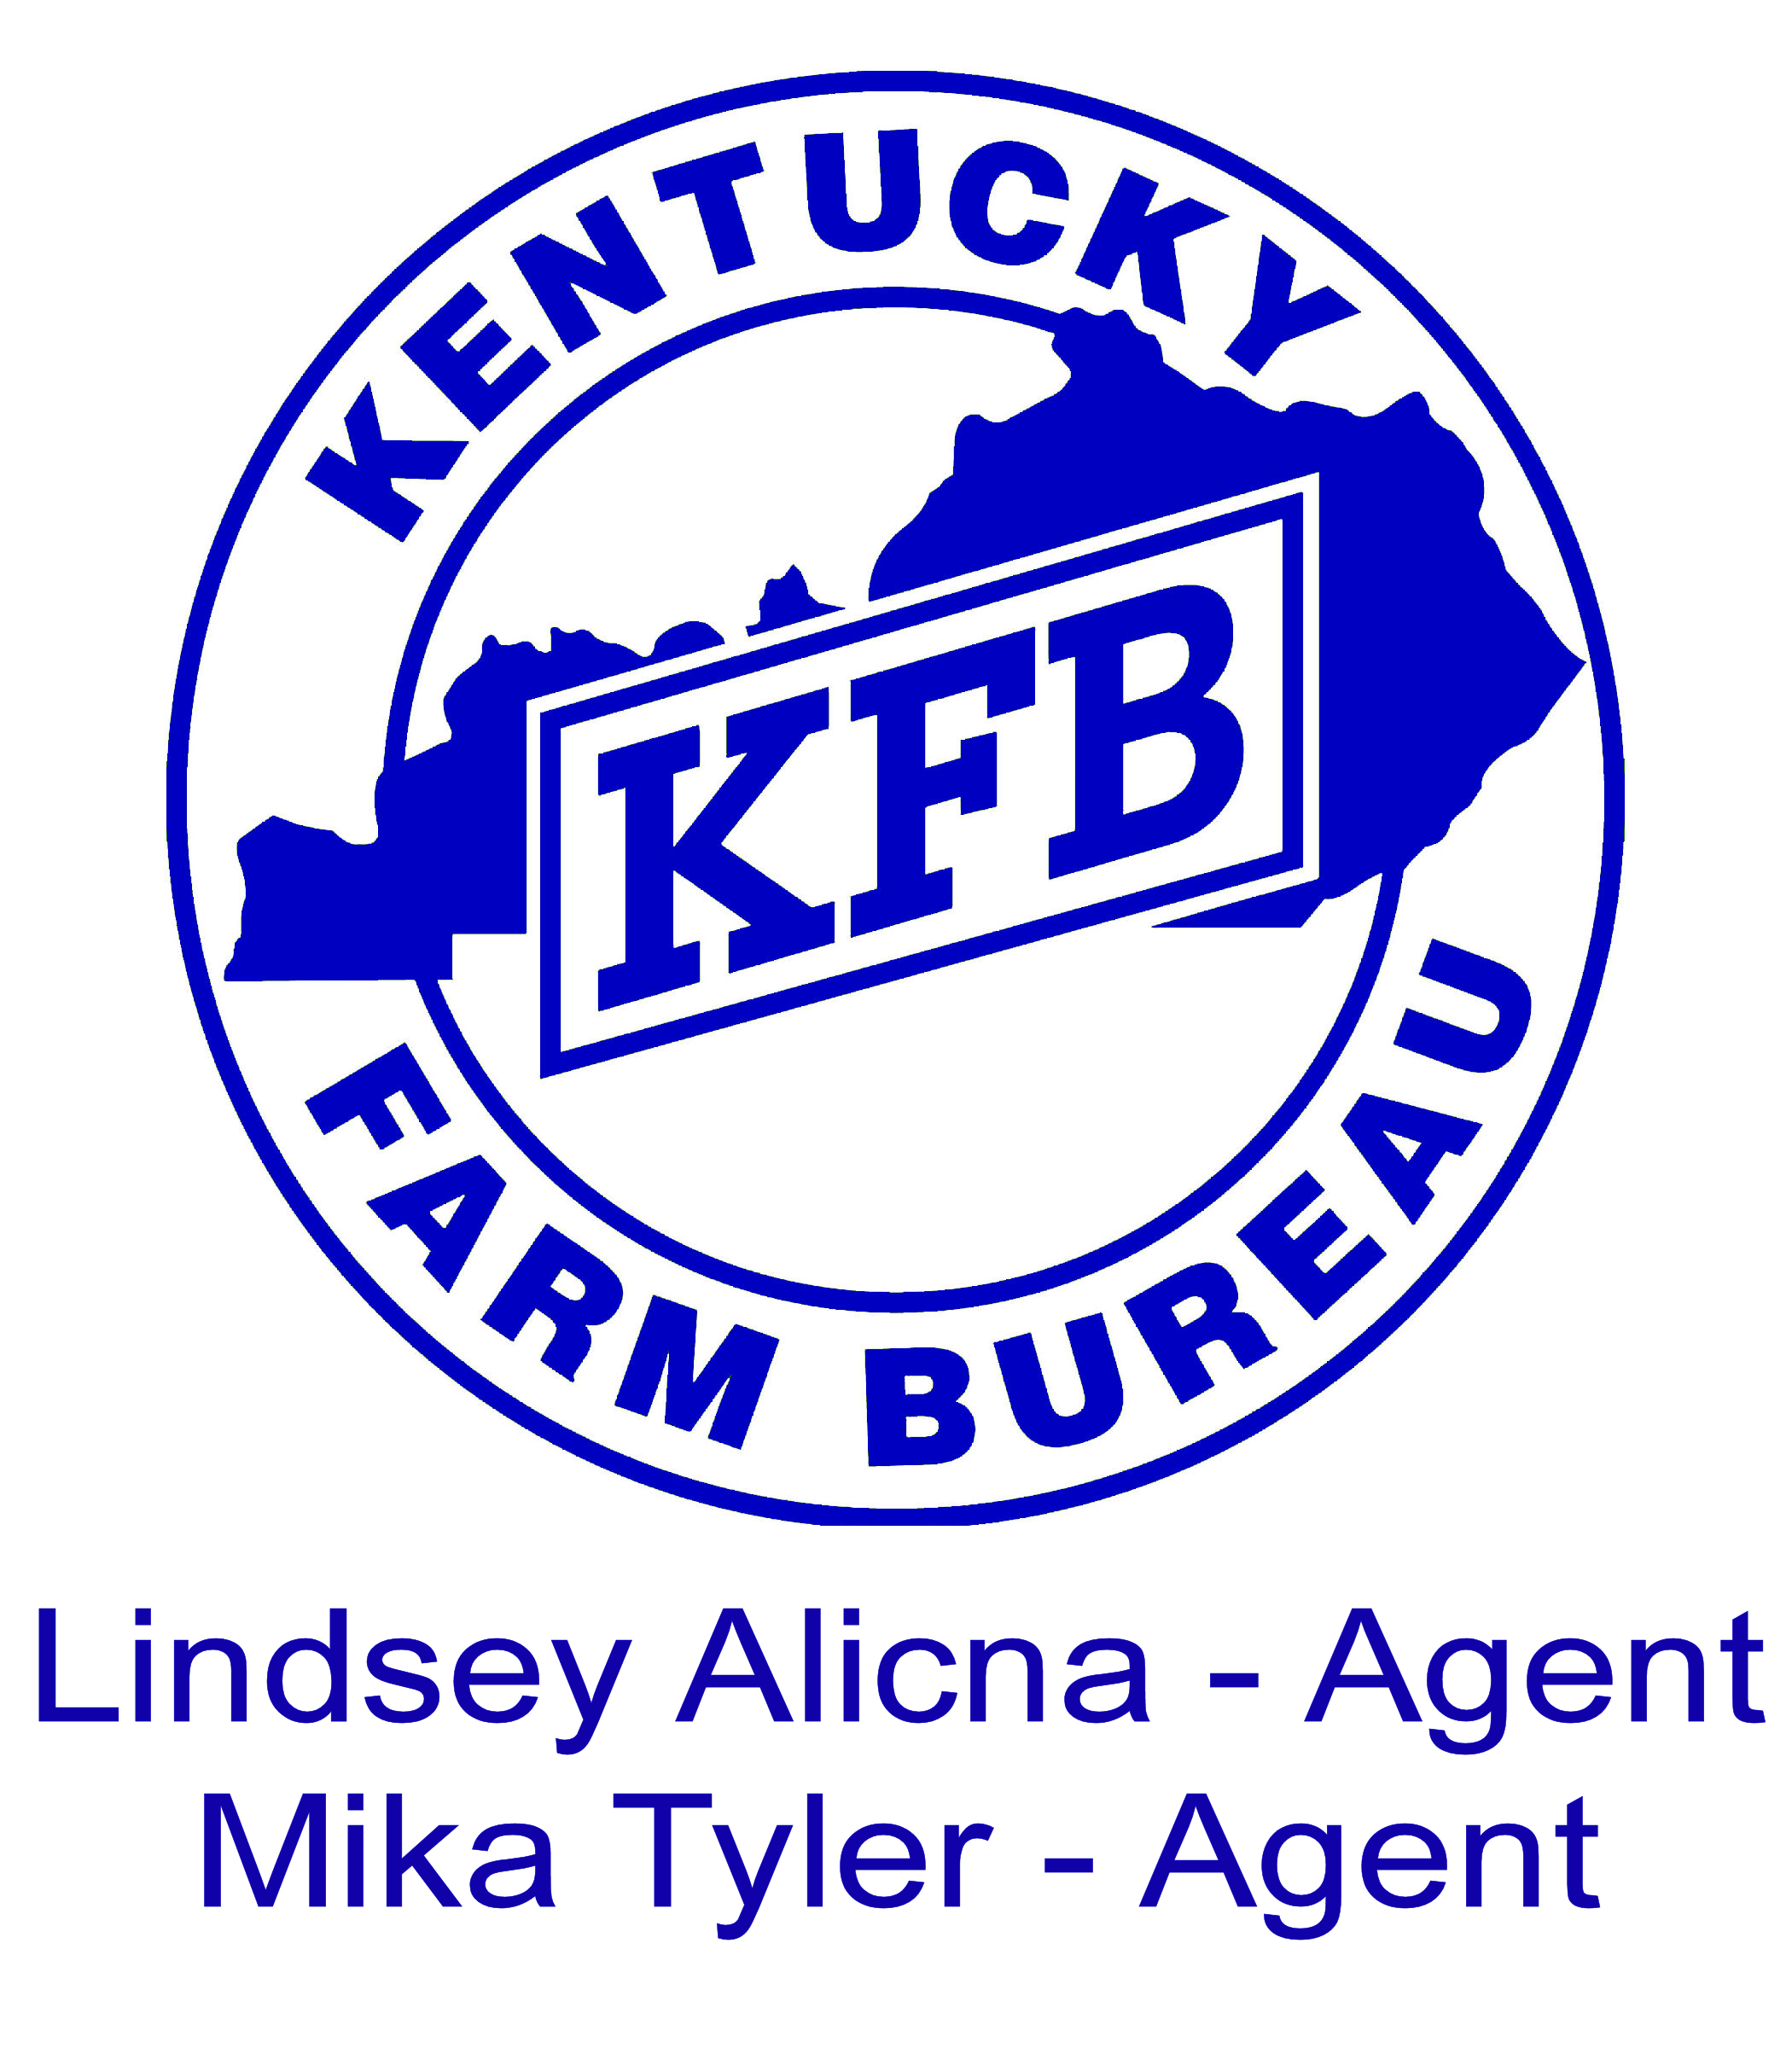 Kentucky Farm Bureau